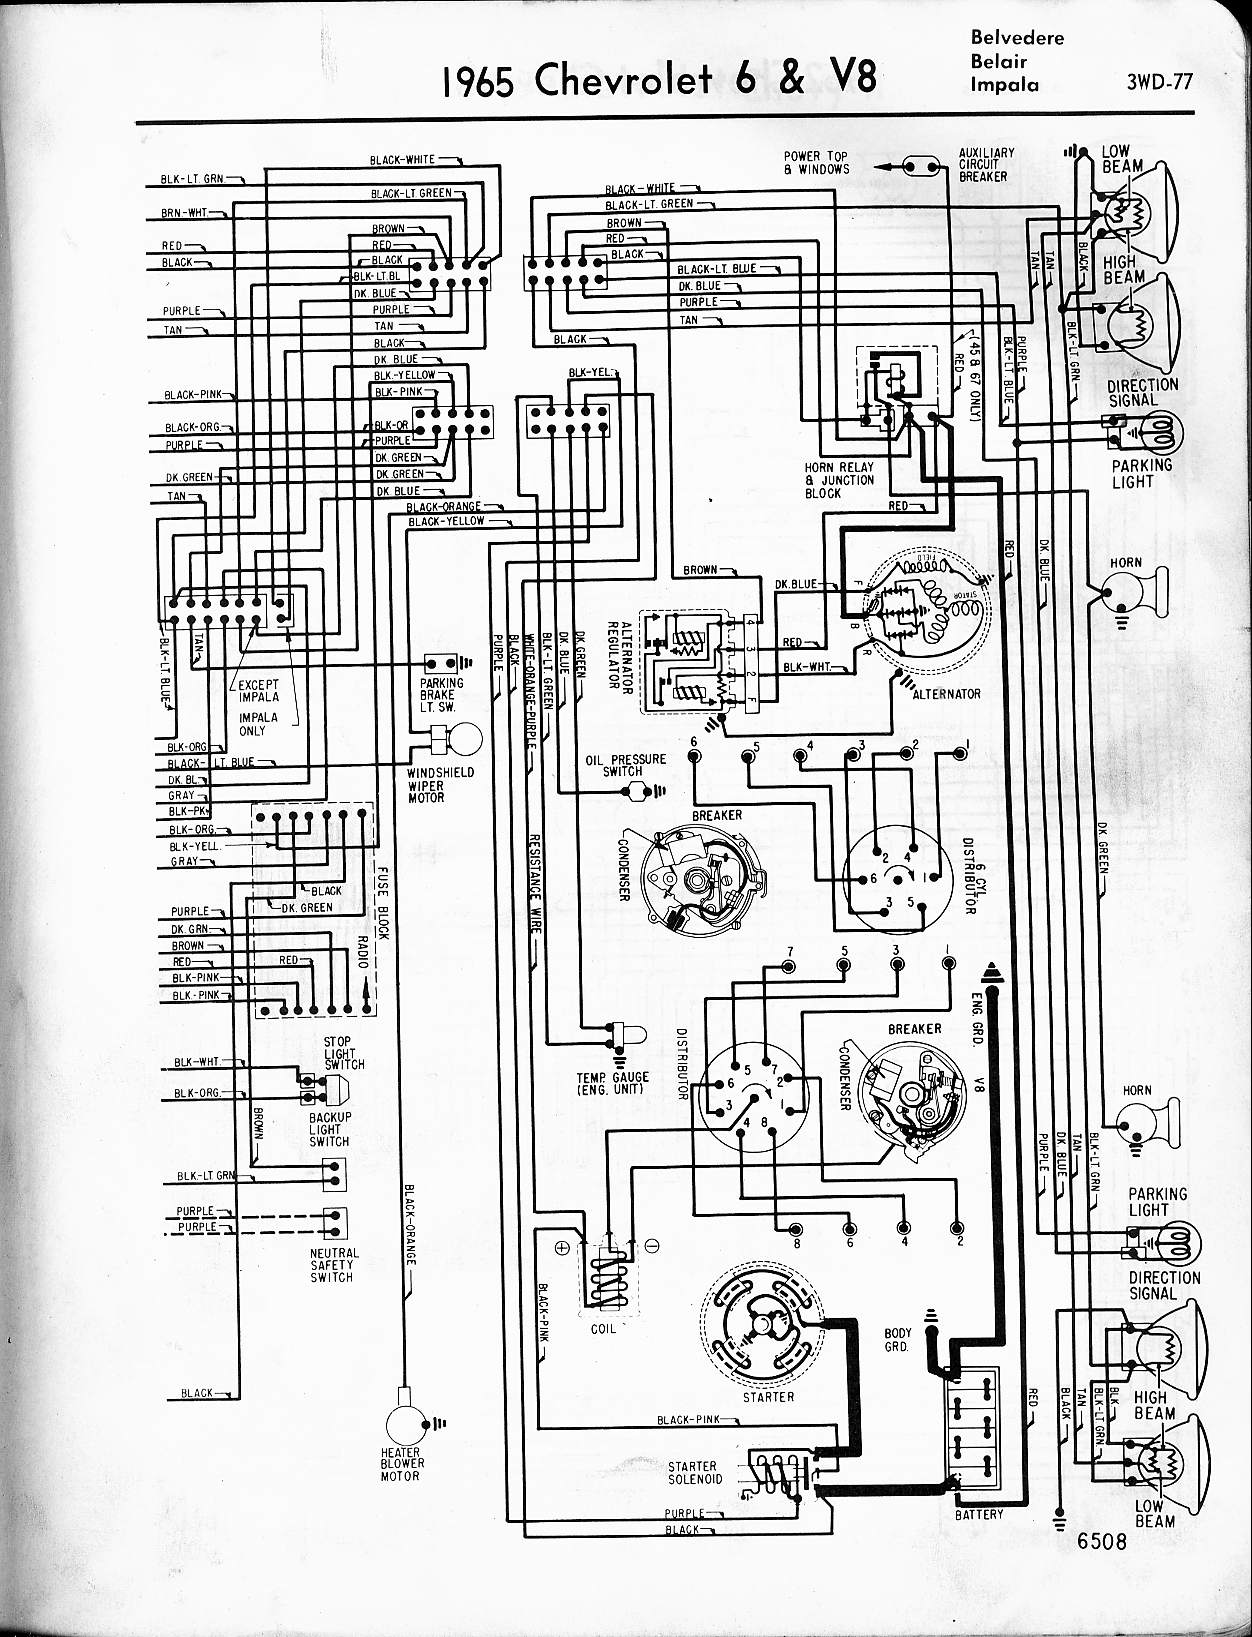 MWireChev65_3WD 077 57 65 chevy wiring diagrams 2003 impala ignition switch wiring diagram at mifinder.co